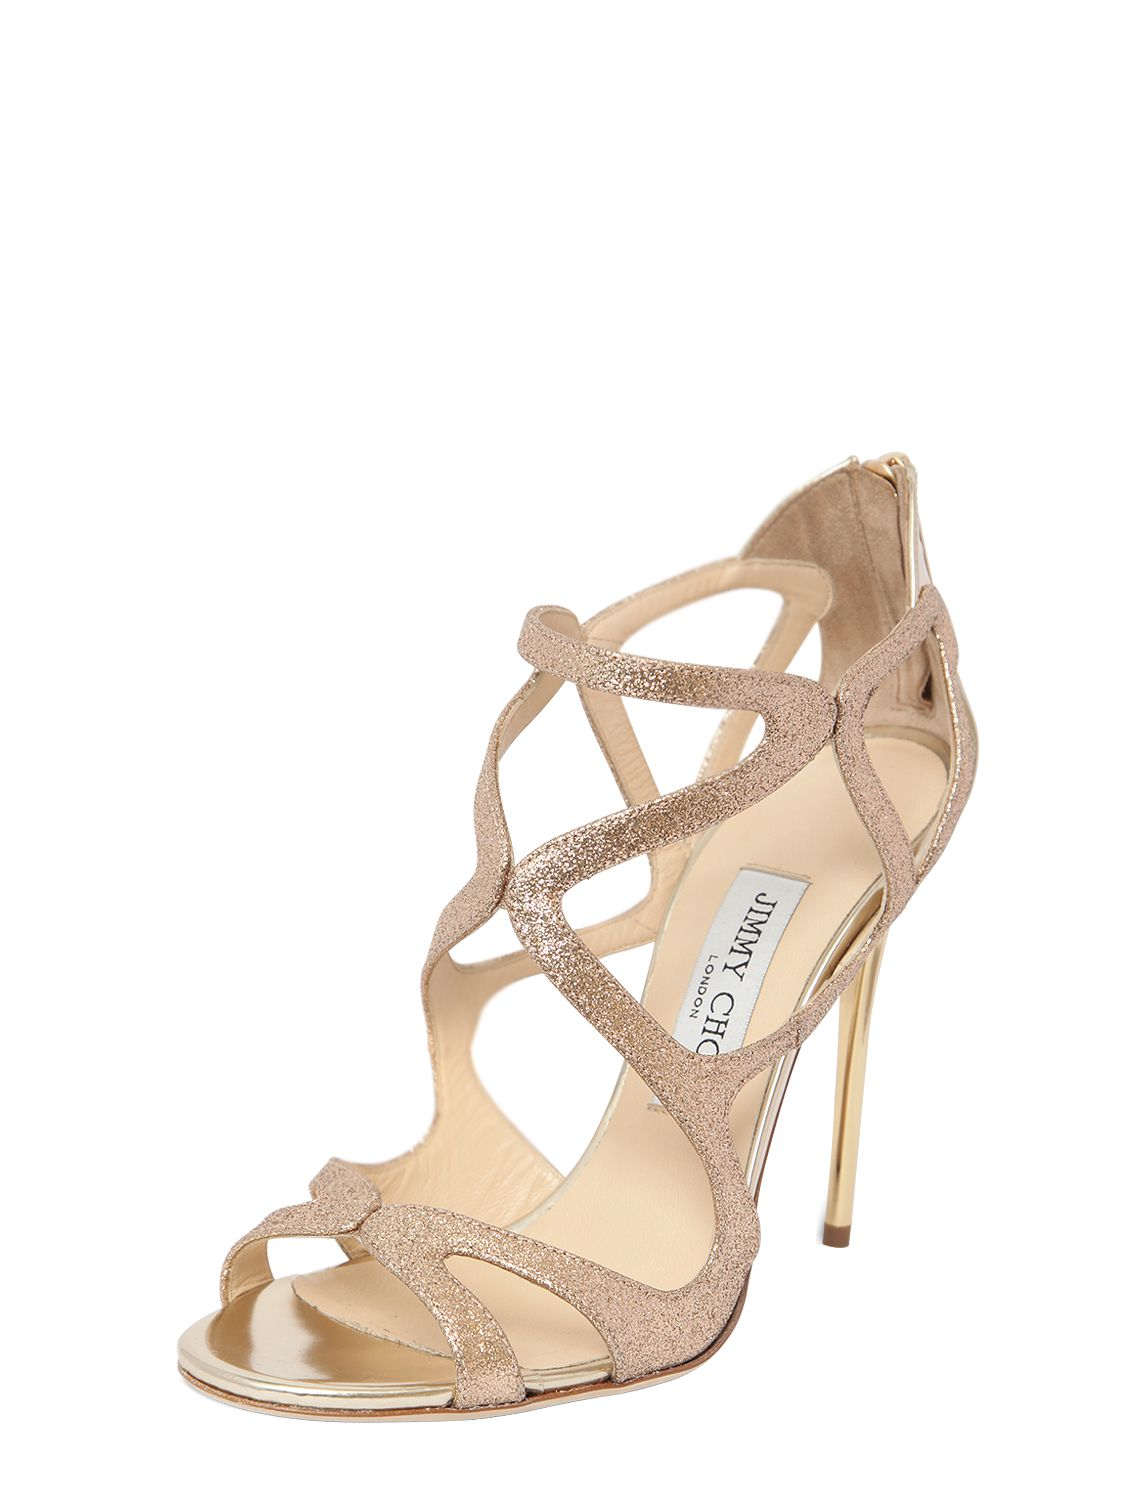 52679c8dc3f2 Gallery. Previously sold at  LUISA VIA ROMA · Women s Jimmy Choo Glitter  Women s Wedding Shoes ...